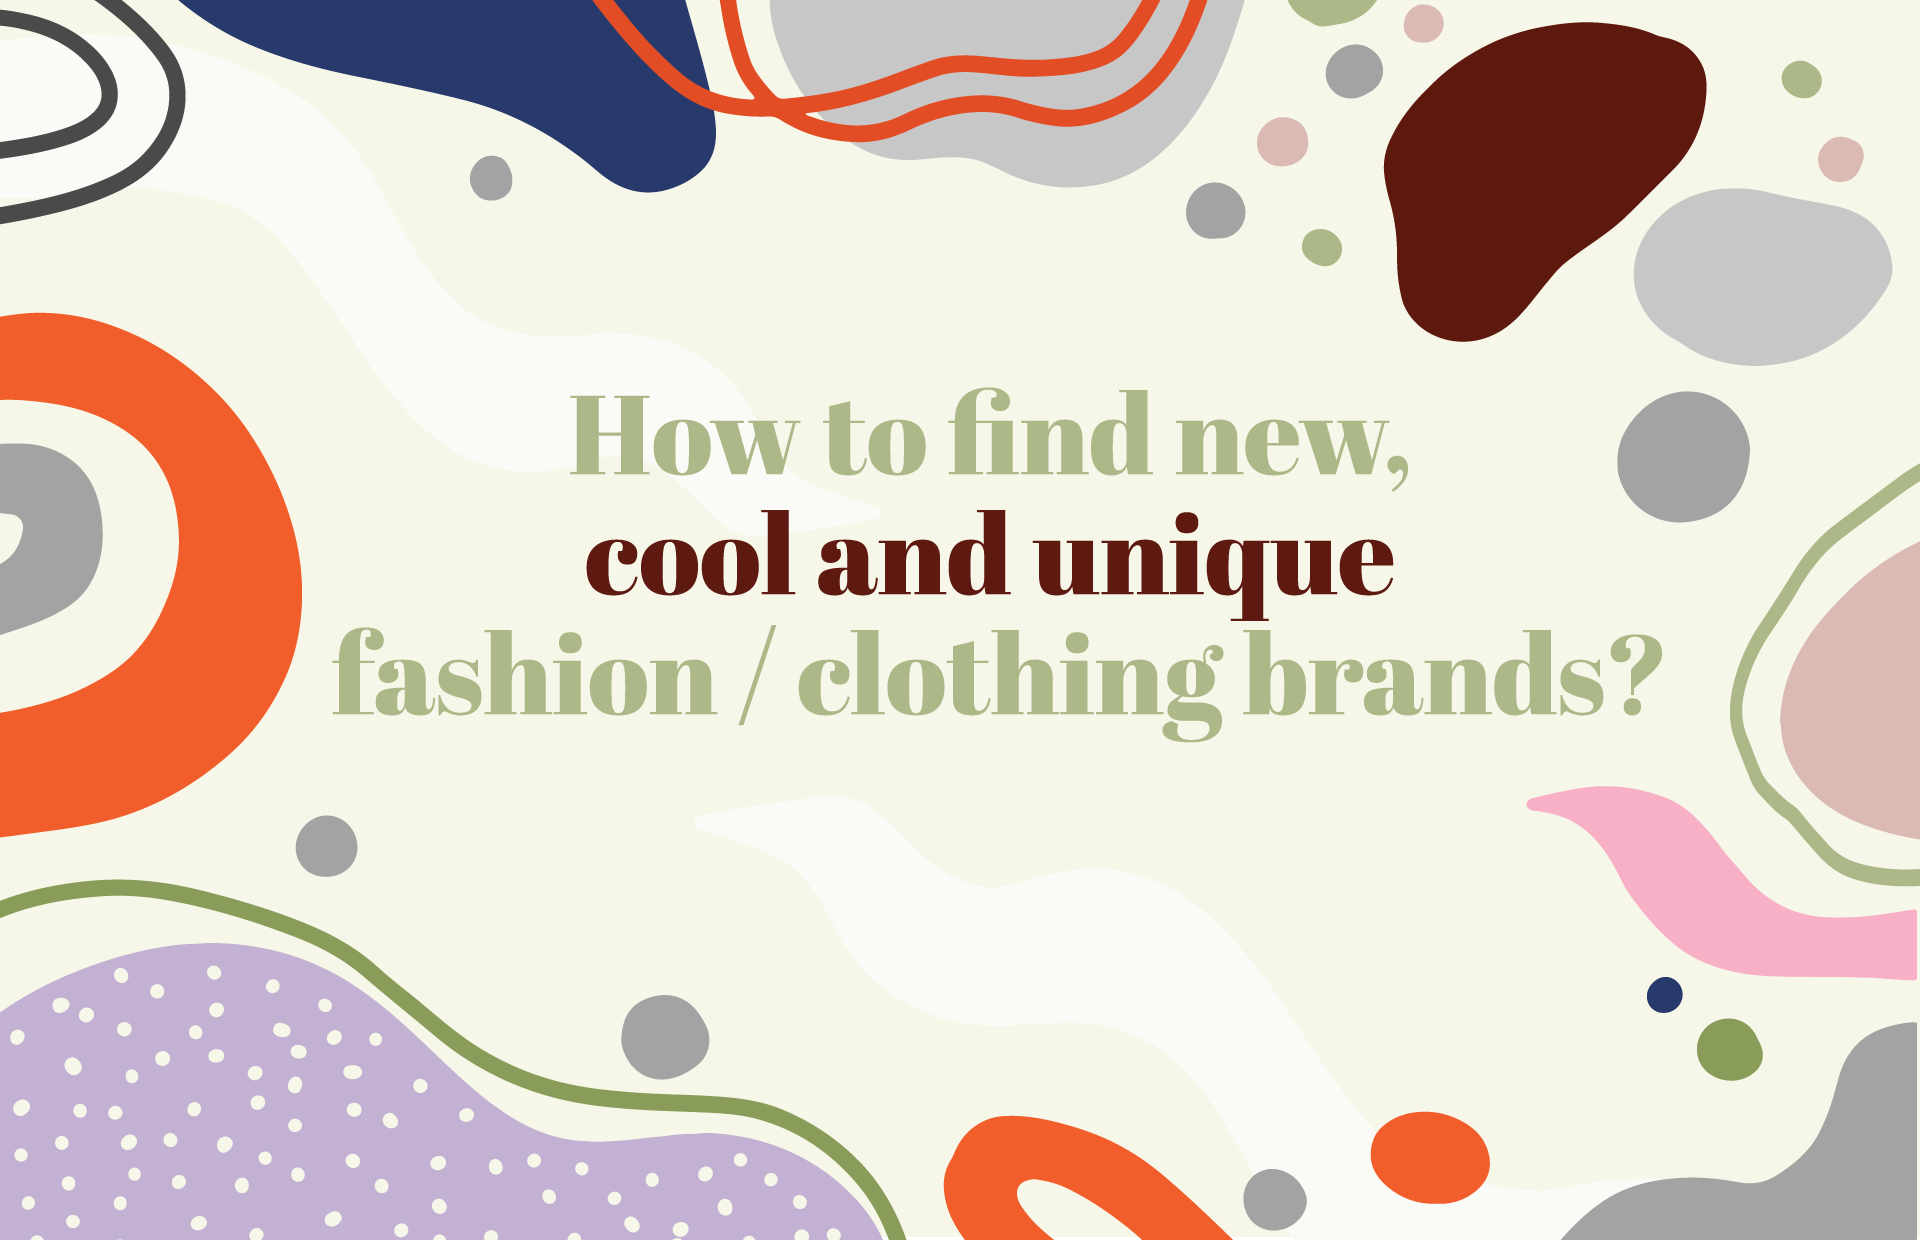 How to find new, cool, and unique fashion and clothing brands?